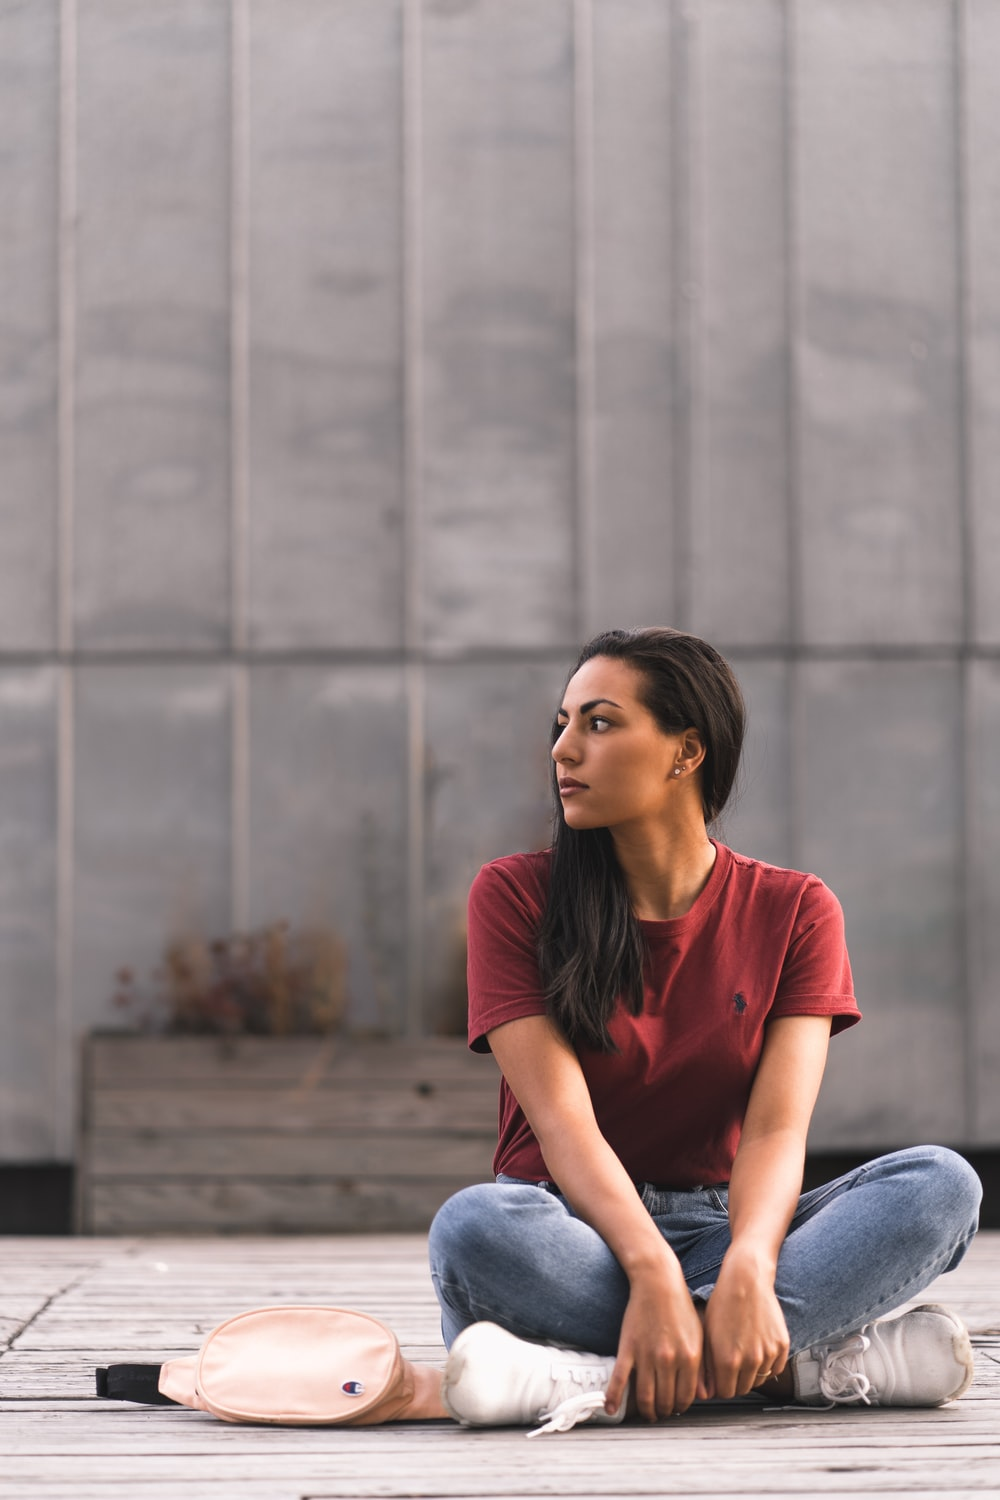 woman wearing red crew-neck shirt sitting on concrete floor